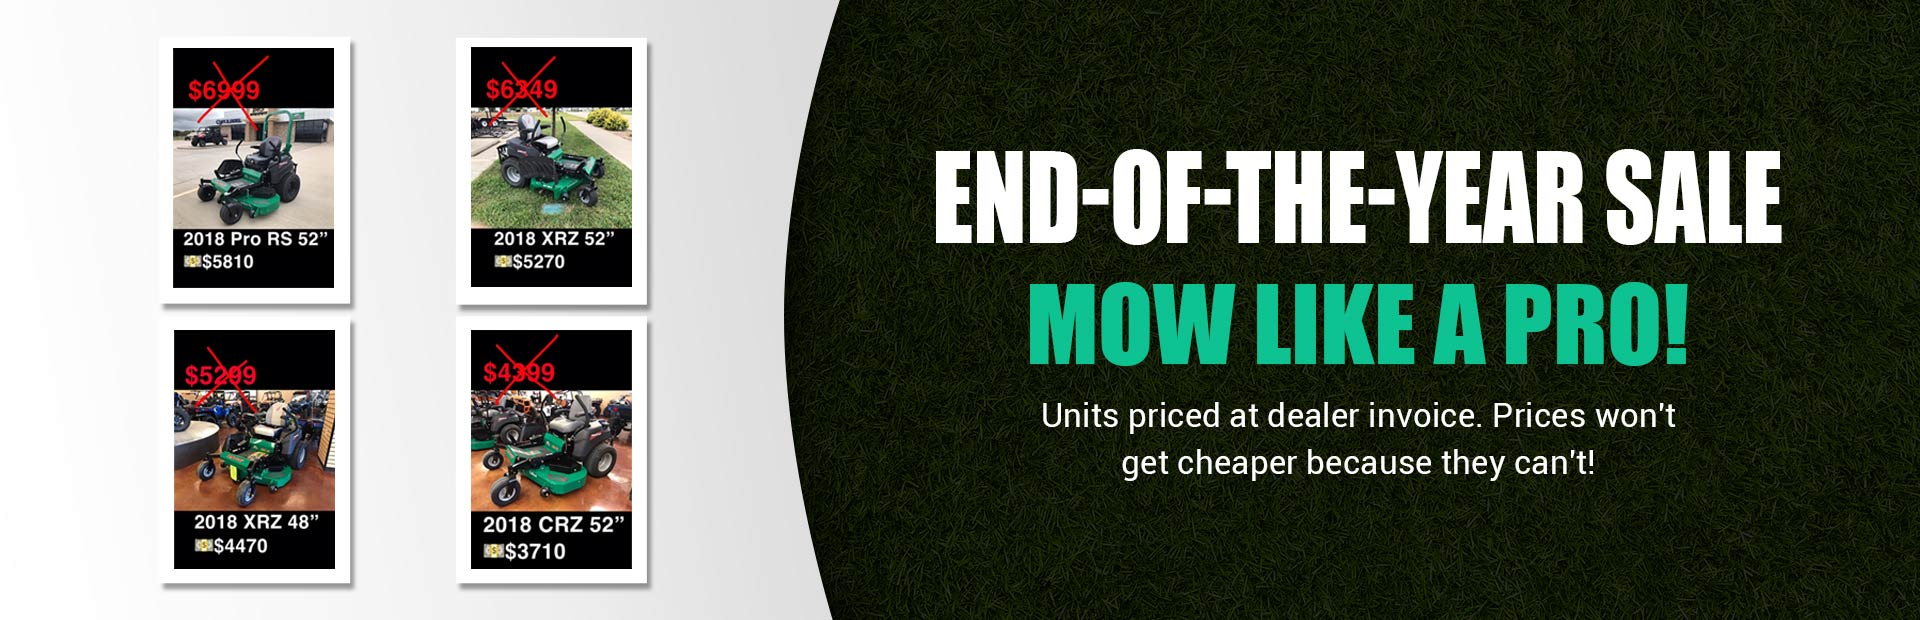 End-of-the-Year Sale: Units priced at dealer invoice.